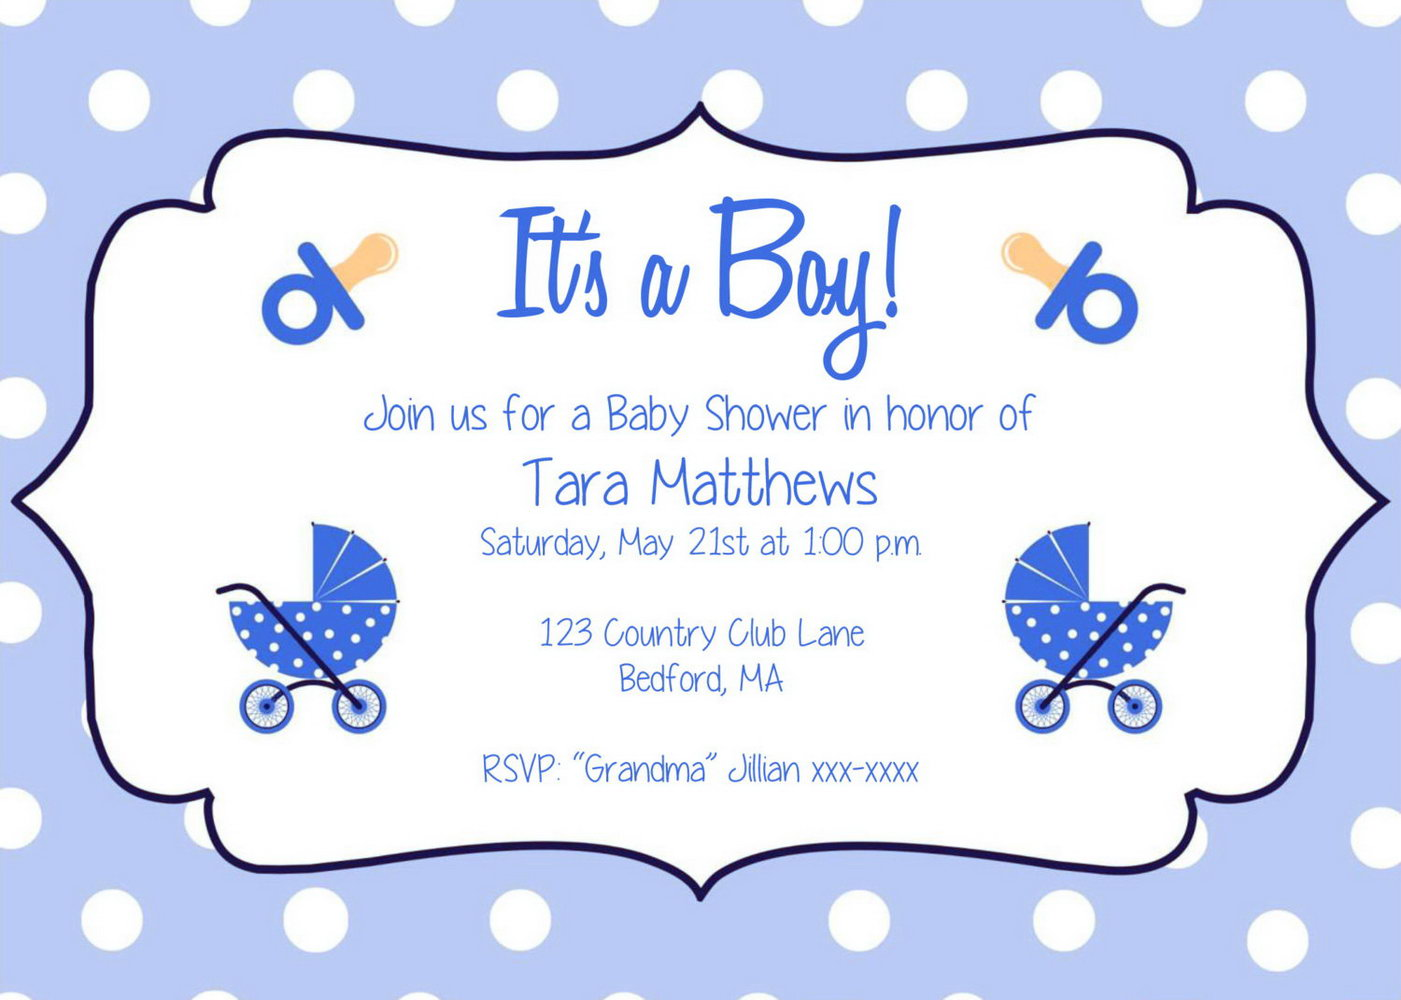 Baby Shower Invitation Templates For A Boy Free